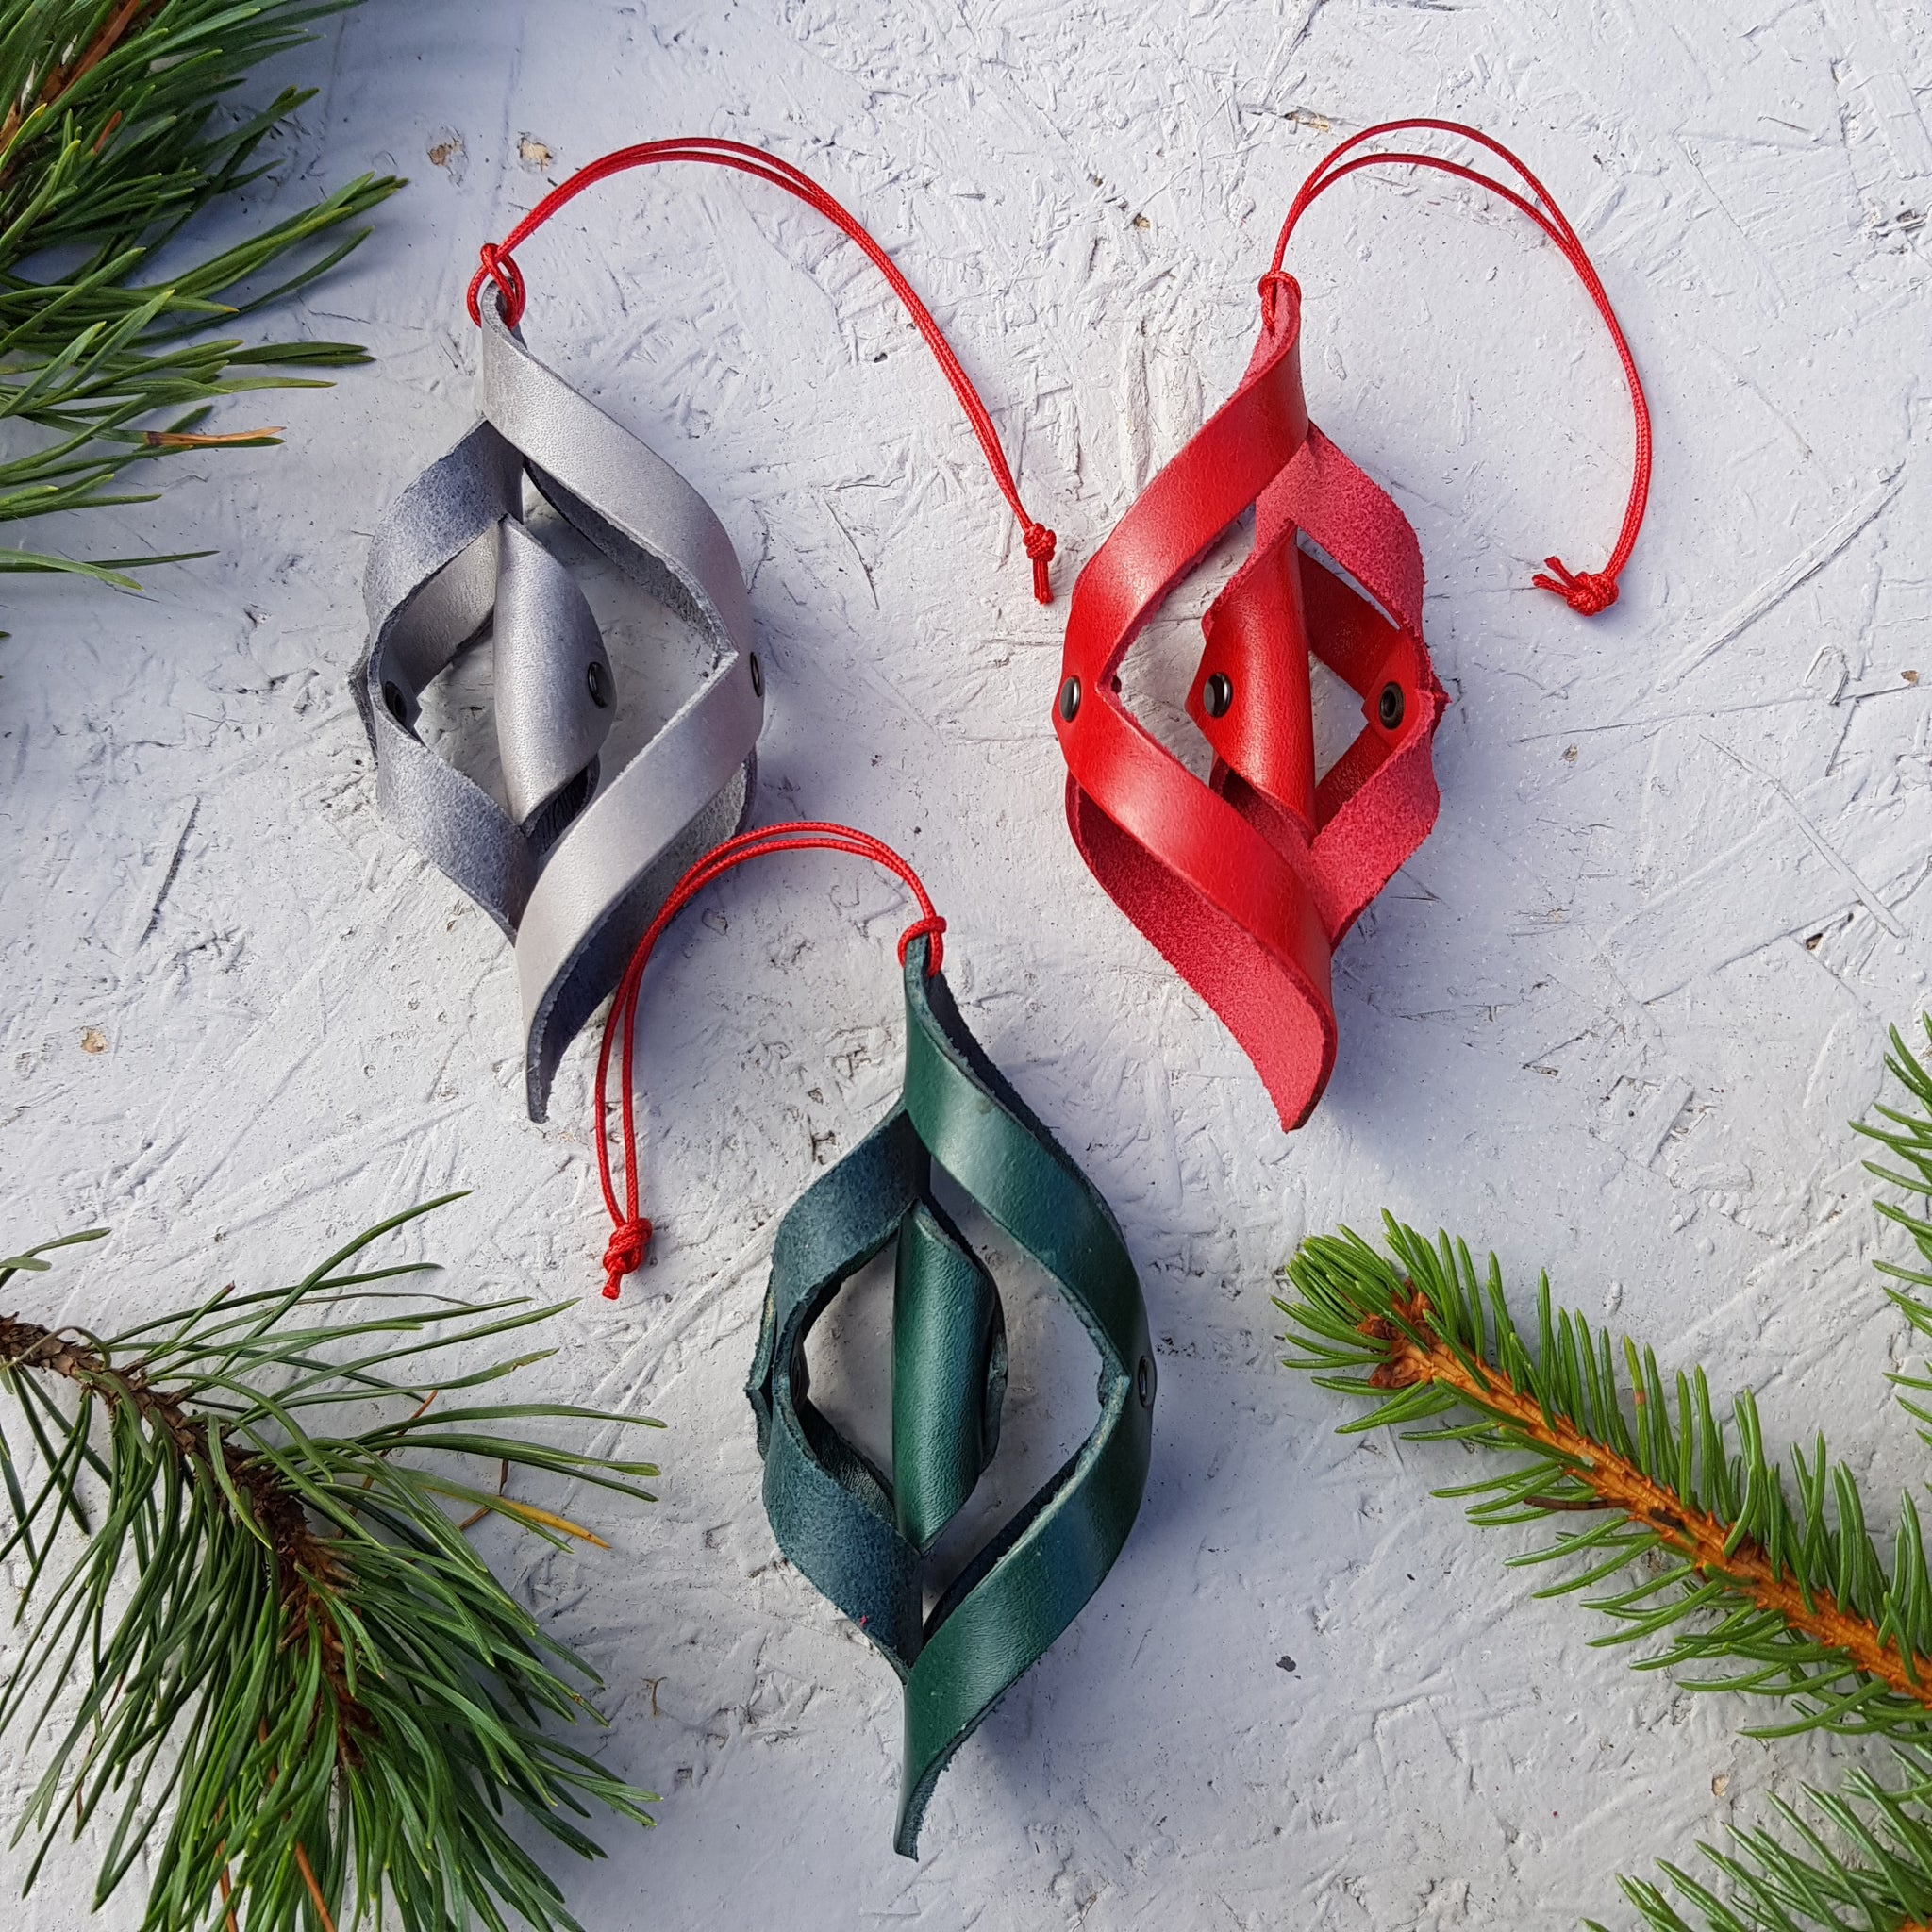 Three twisted leather handmade decorations